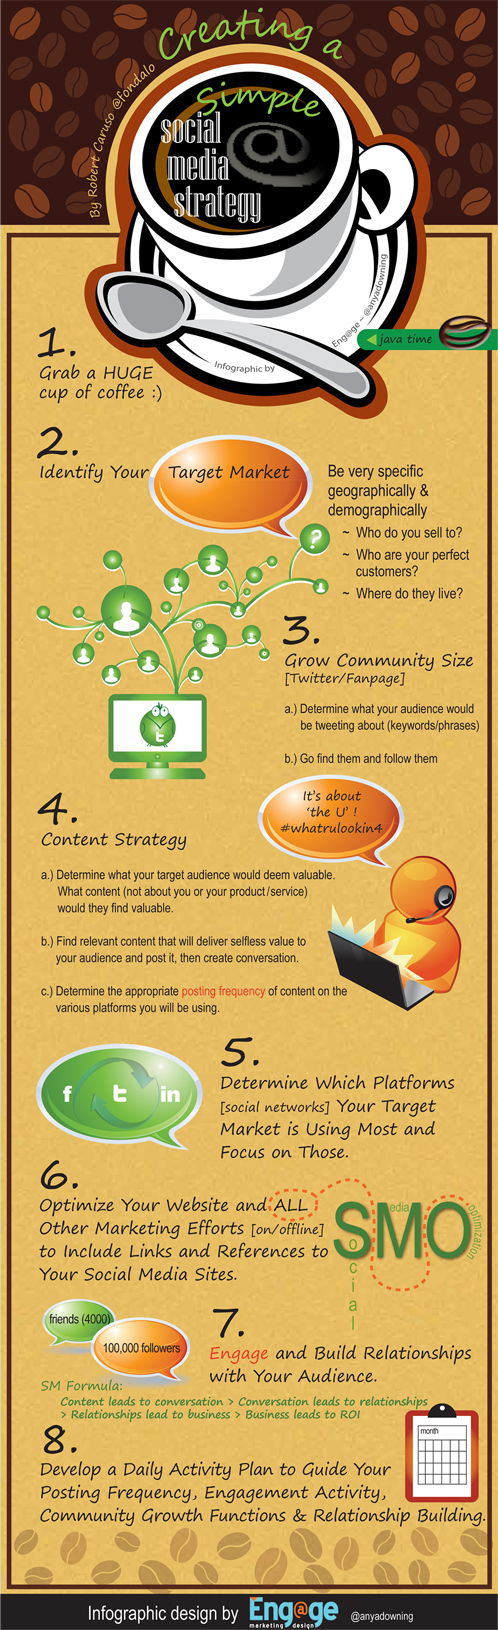 Creating a Simple Social Media Strategy [infographic]